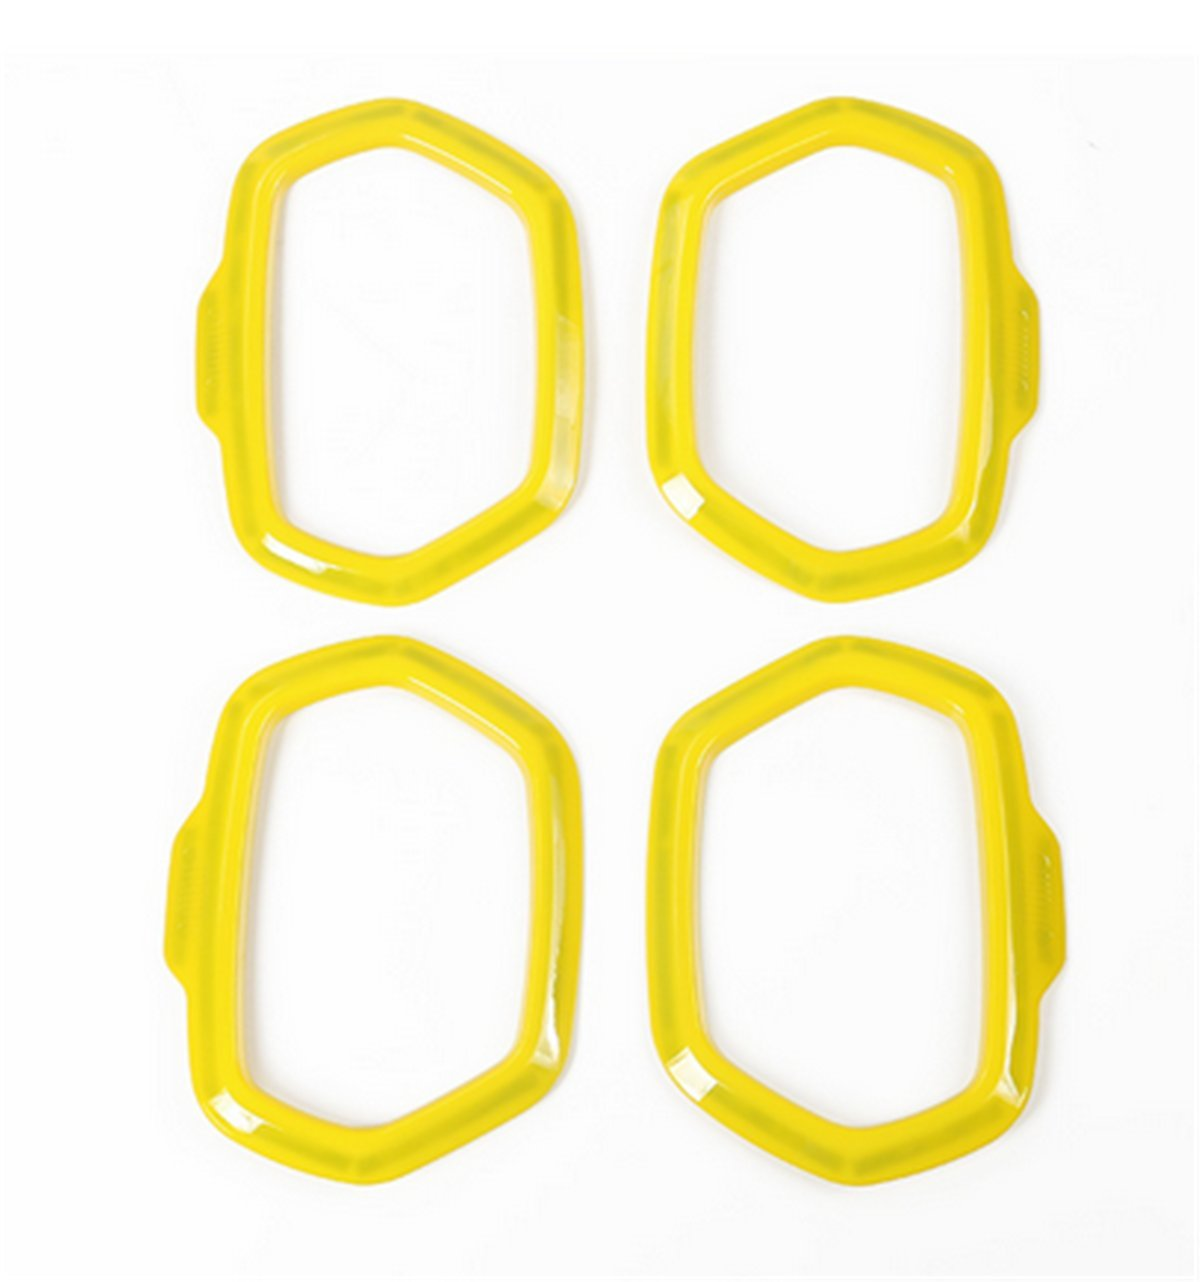 Dwindish Yellow ABS Interior Car Door Sound Speaker Audio Ring Cover Trim for Jeep Renegade 2015-2017 by Dwindish (Image #2)